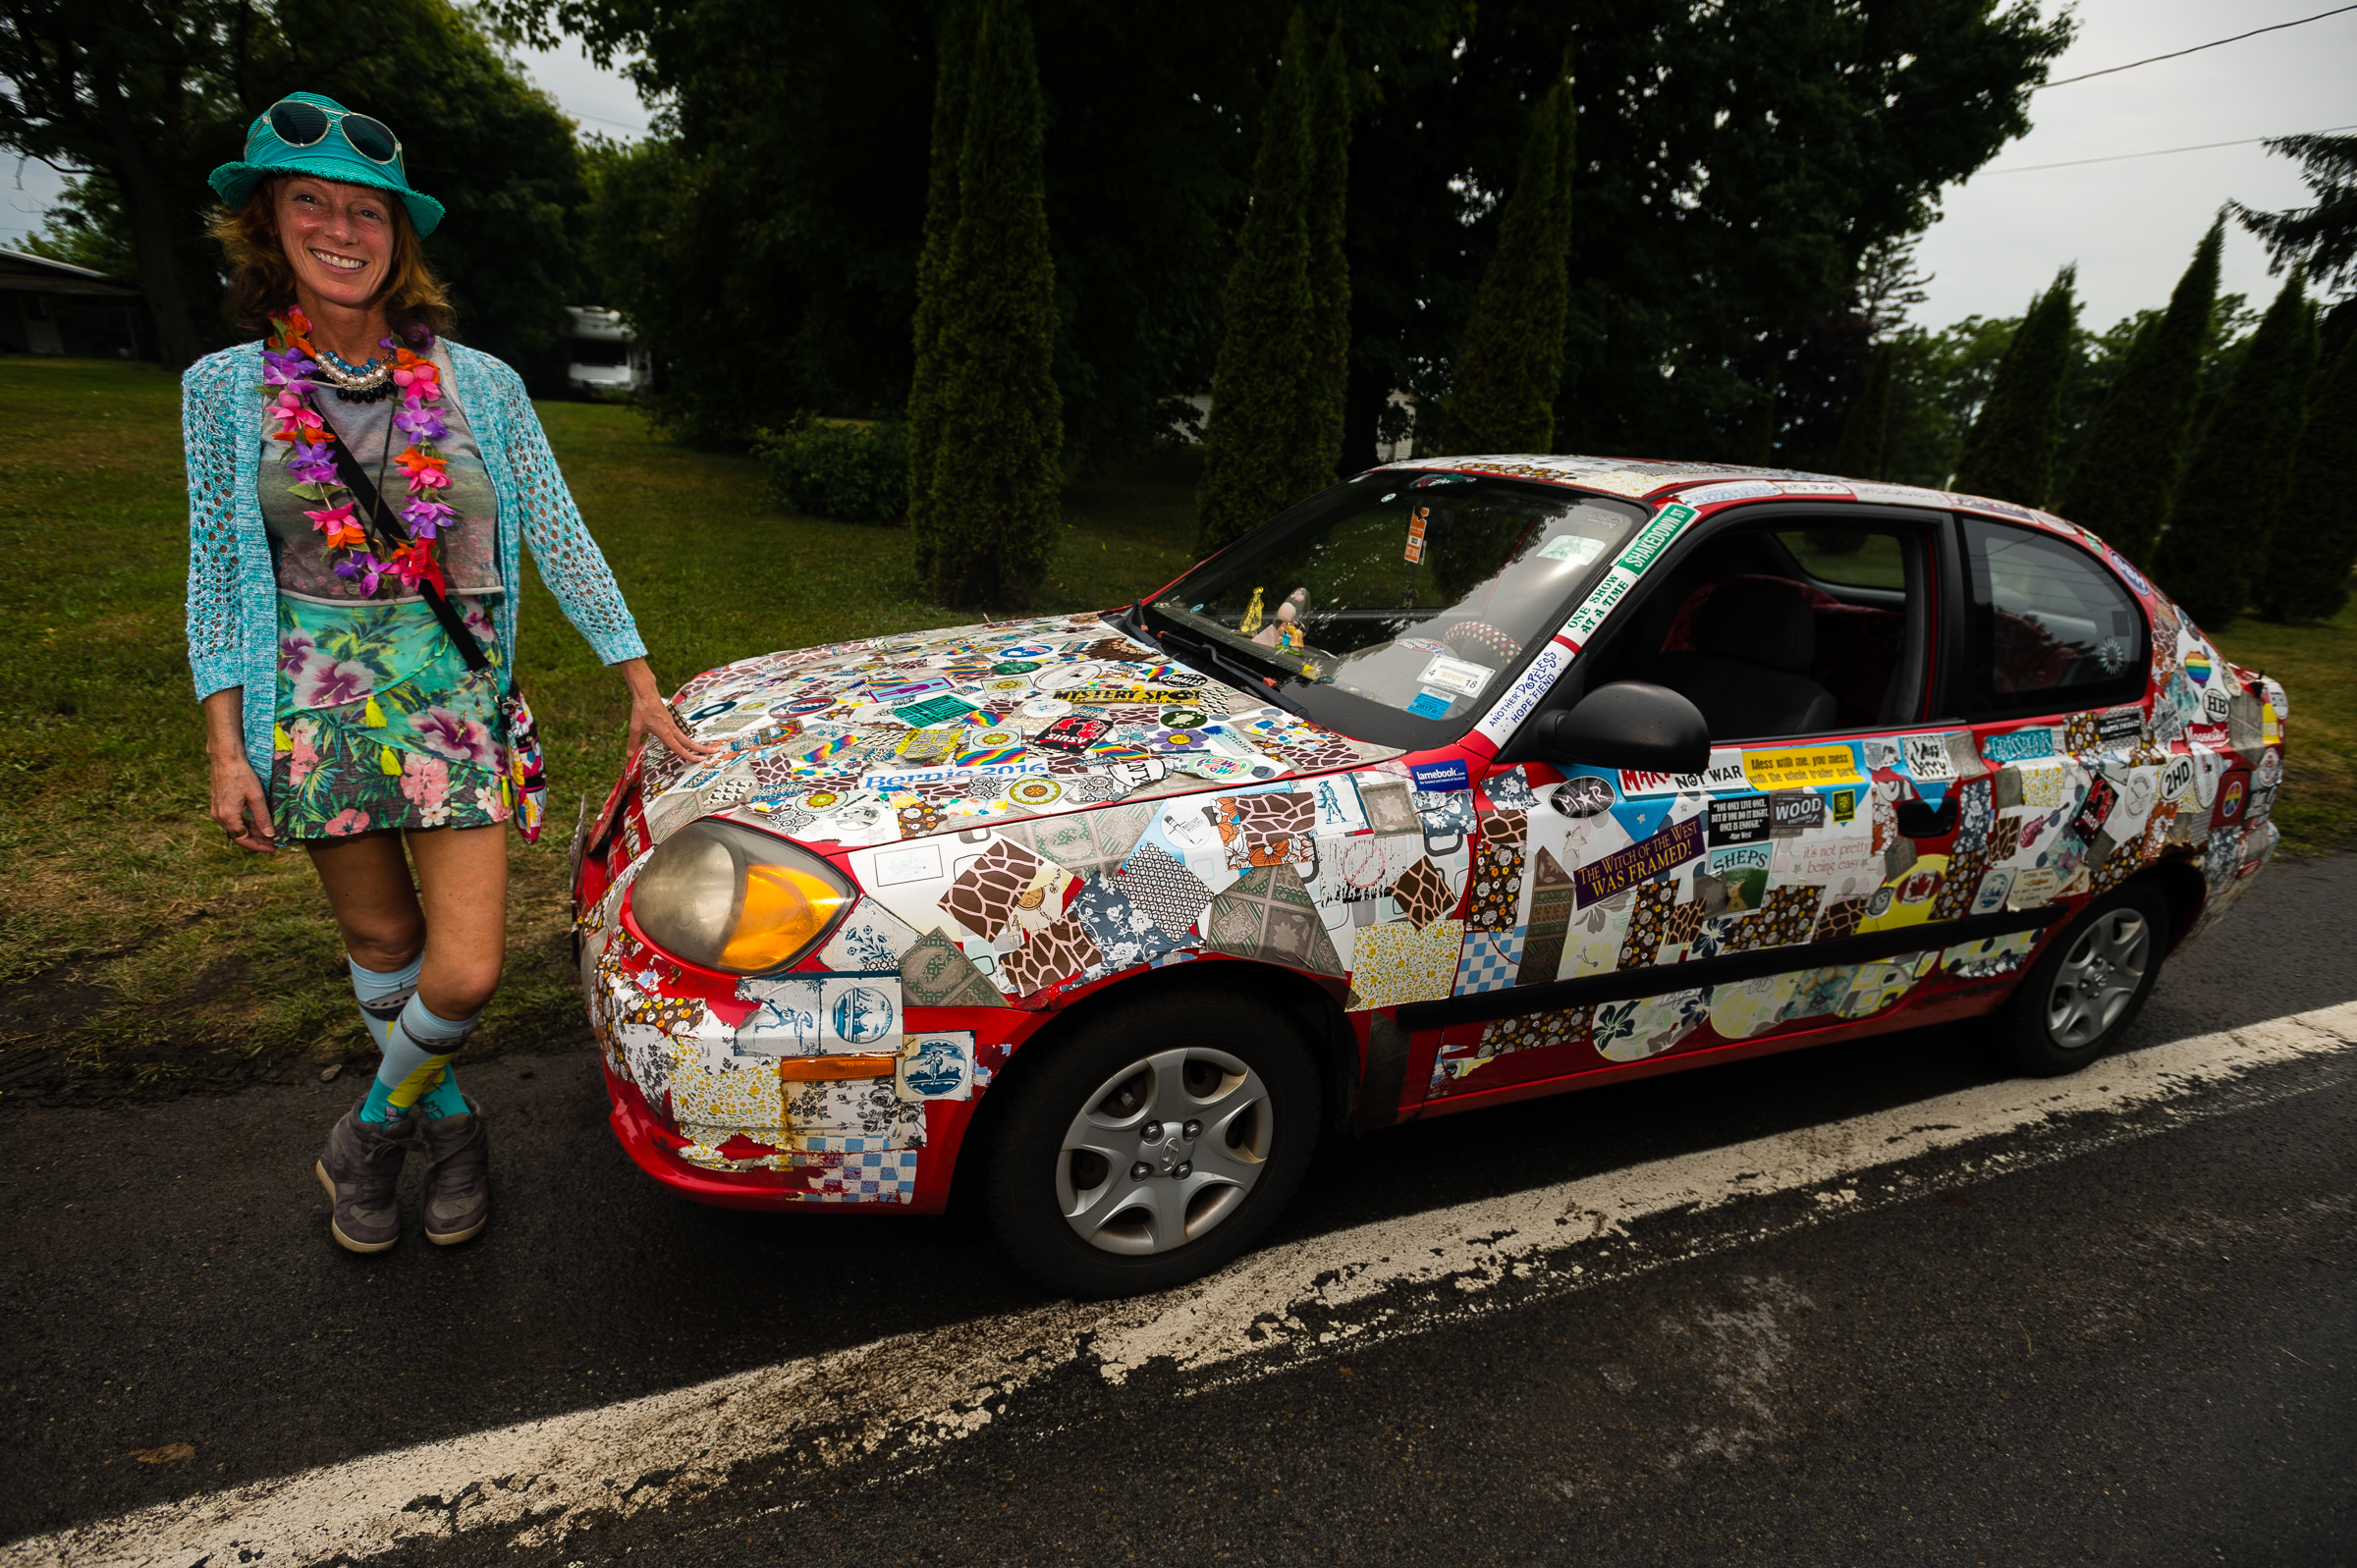 "Jesse Klein, a resident of Auburn, stands next to her third vehicle owned and adorned with a myriad of stickers during the annual ""50 Mile Yard Sale"", Saturday, July 20, 2016 along Route 90 in the Cayuga Lake region of the Finger Lakes, New York. Klein travels to the annual event which she refers to as her ""yearly weekend vacation"" as an opportunity to shop for objects and materials to repurpose into functional art."